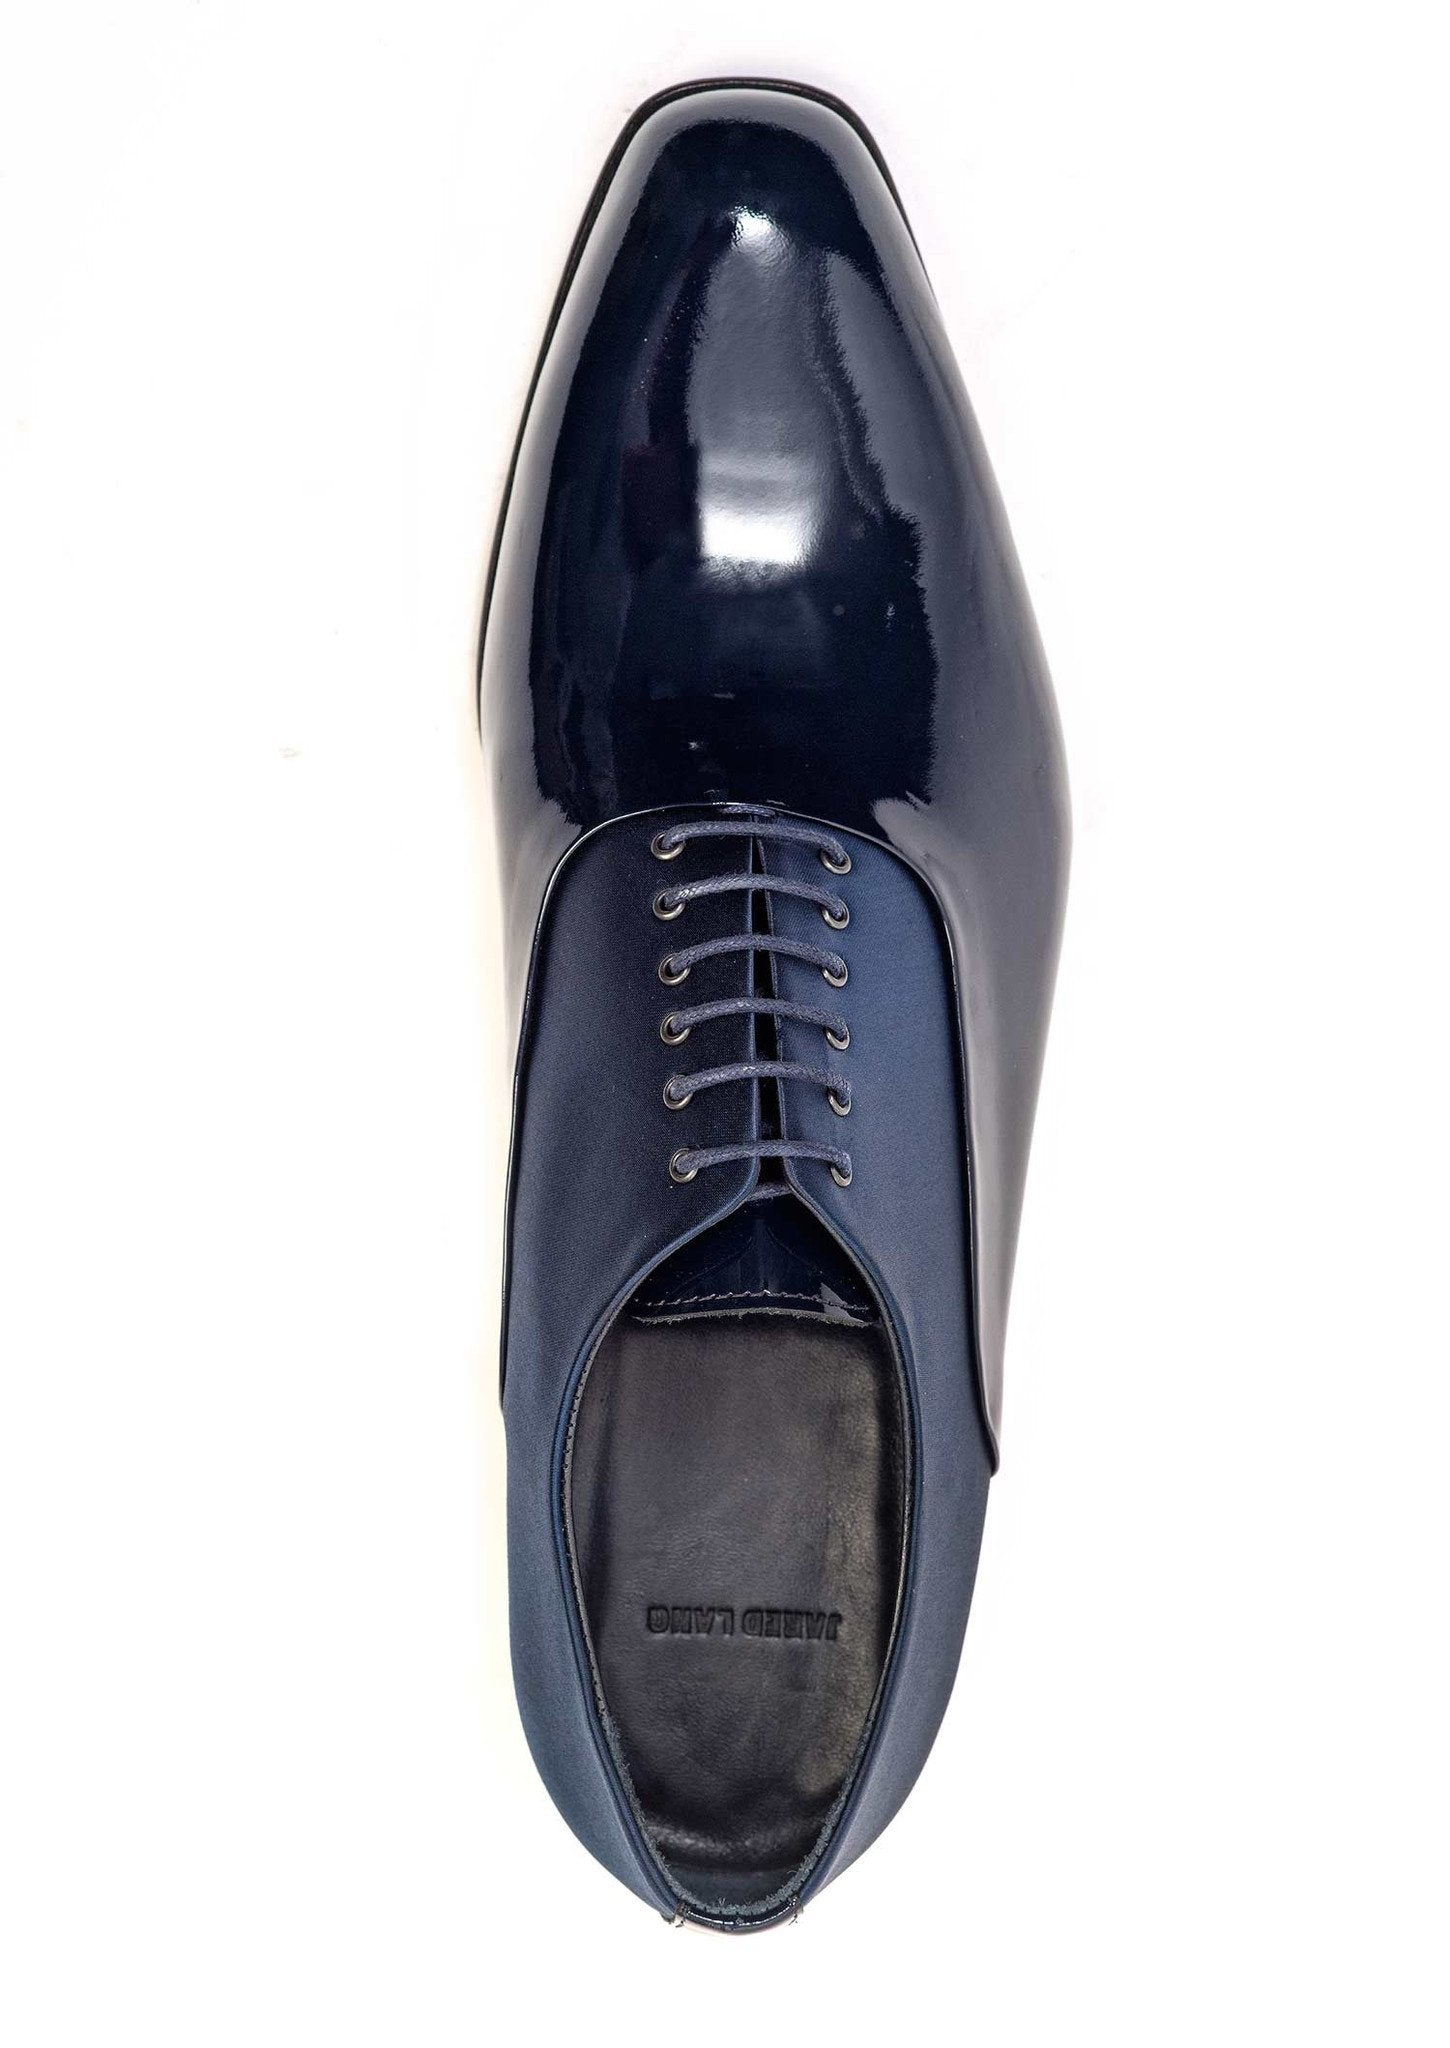 Navy Satin and Patent Leather Dress Shoes for Men - top 51105-NV - Jared Lang